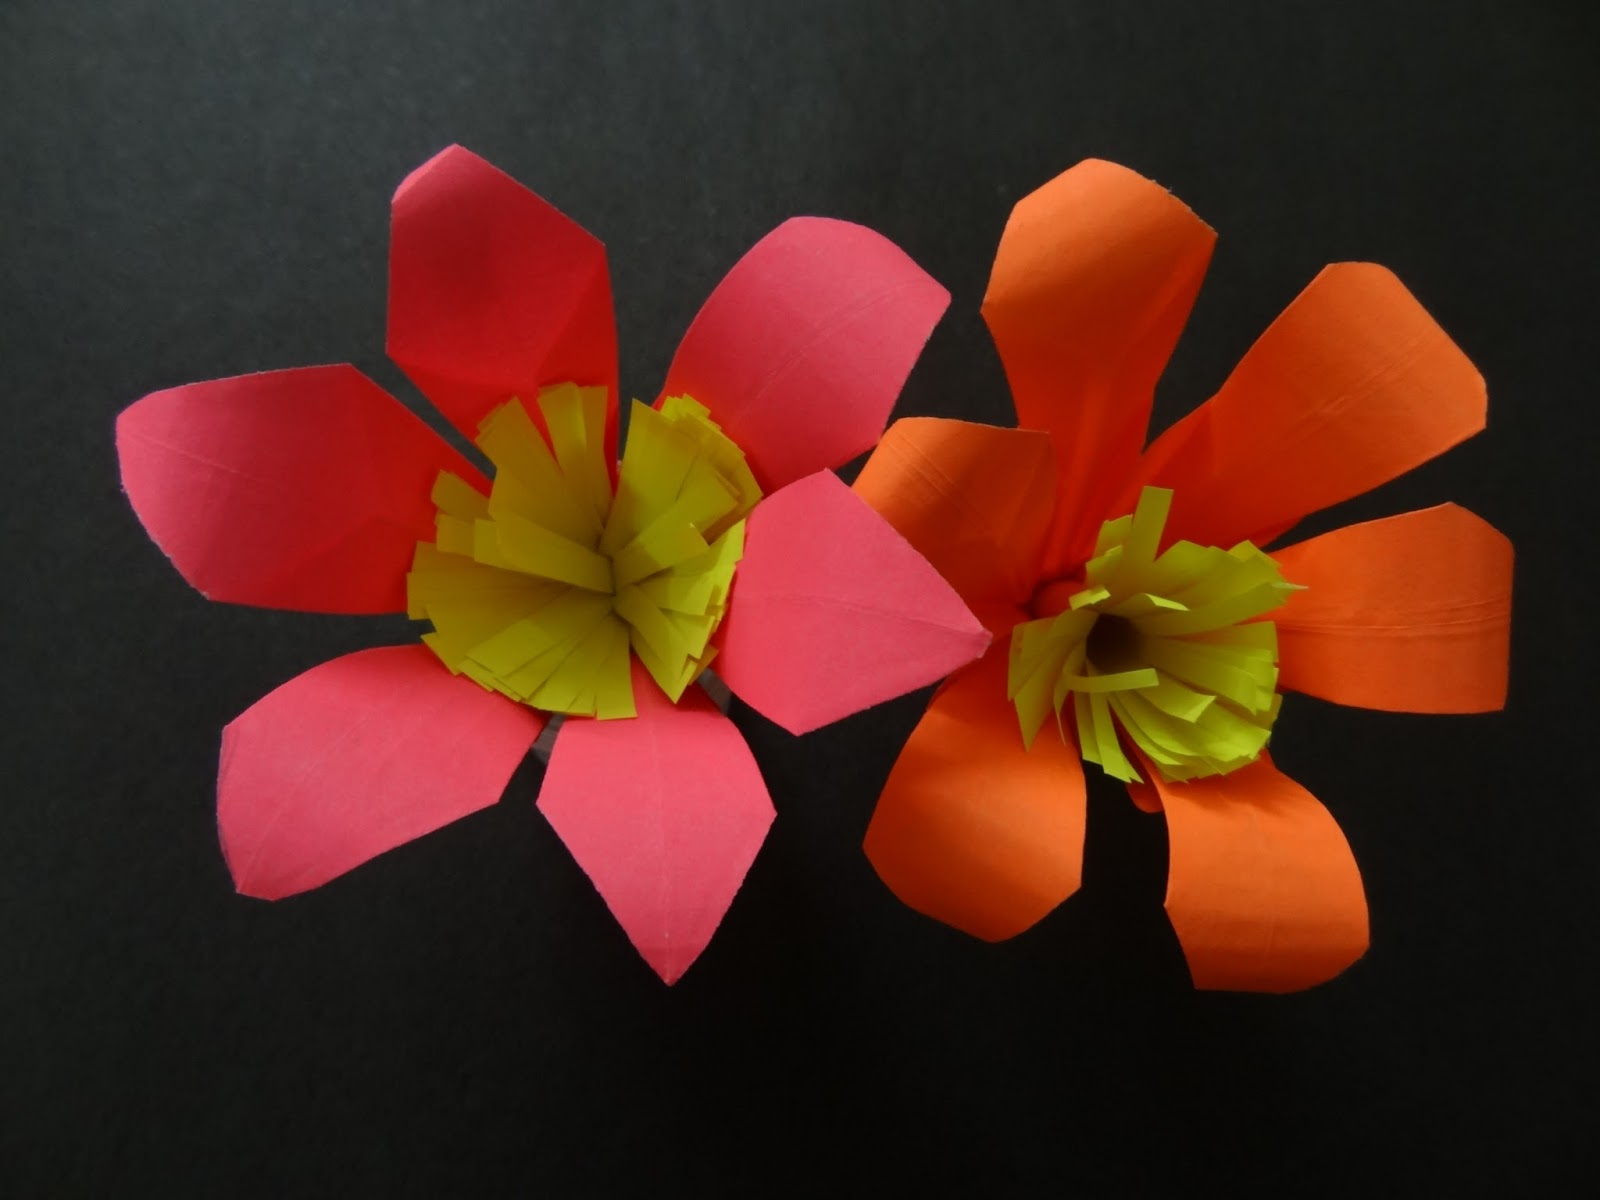 Paper crafts lily flower this paper flower tutorial on how to make a beautiful paper lily flower will guide you step by step on how the make this beautiful paper flower for izmirmasajfo